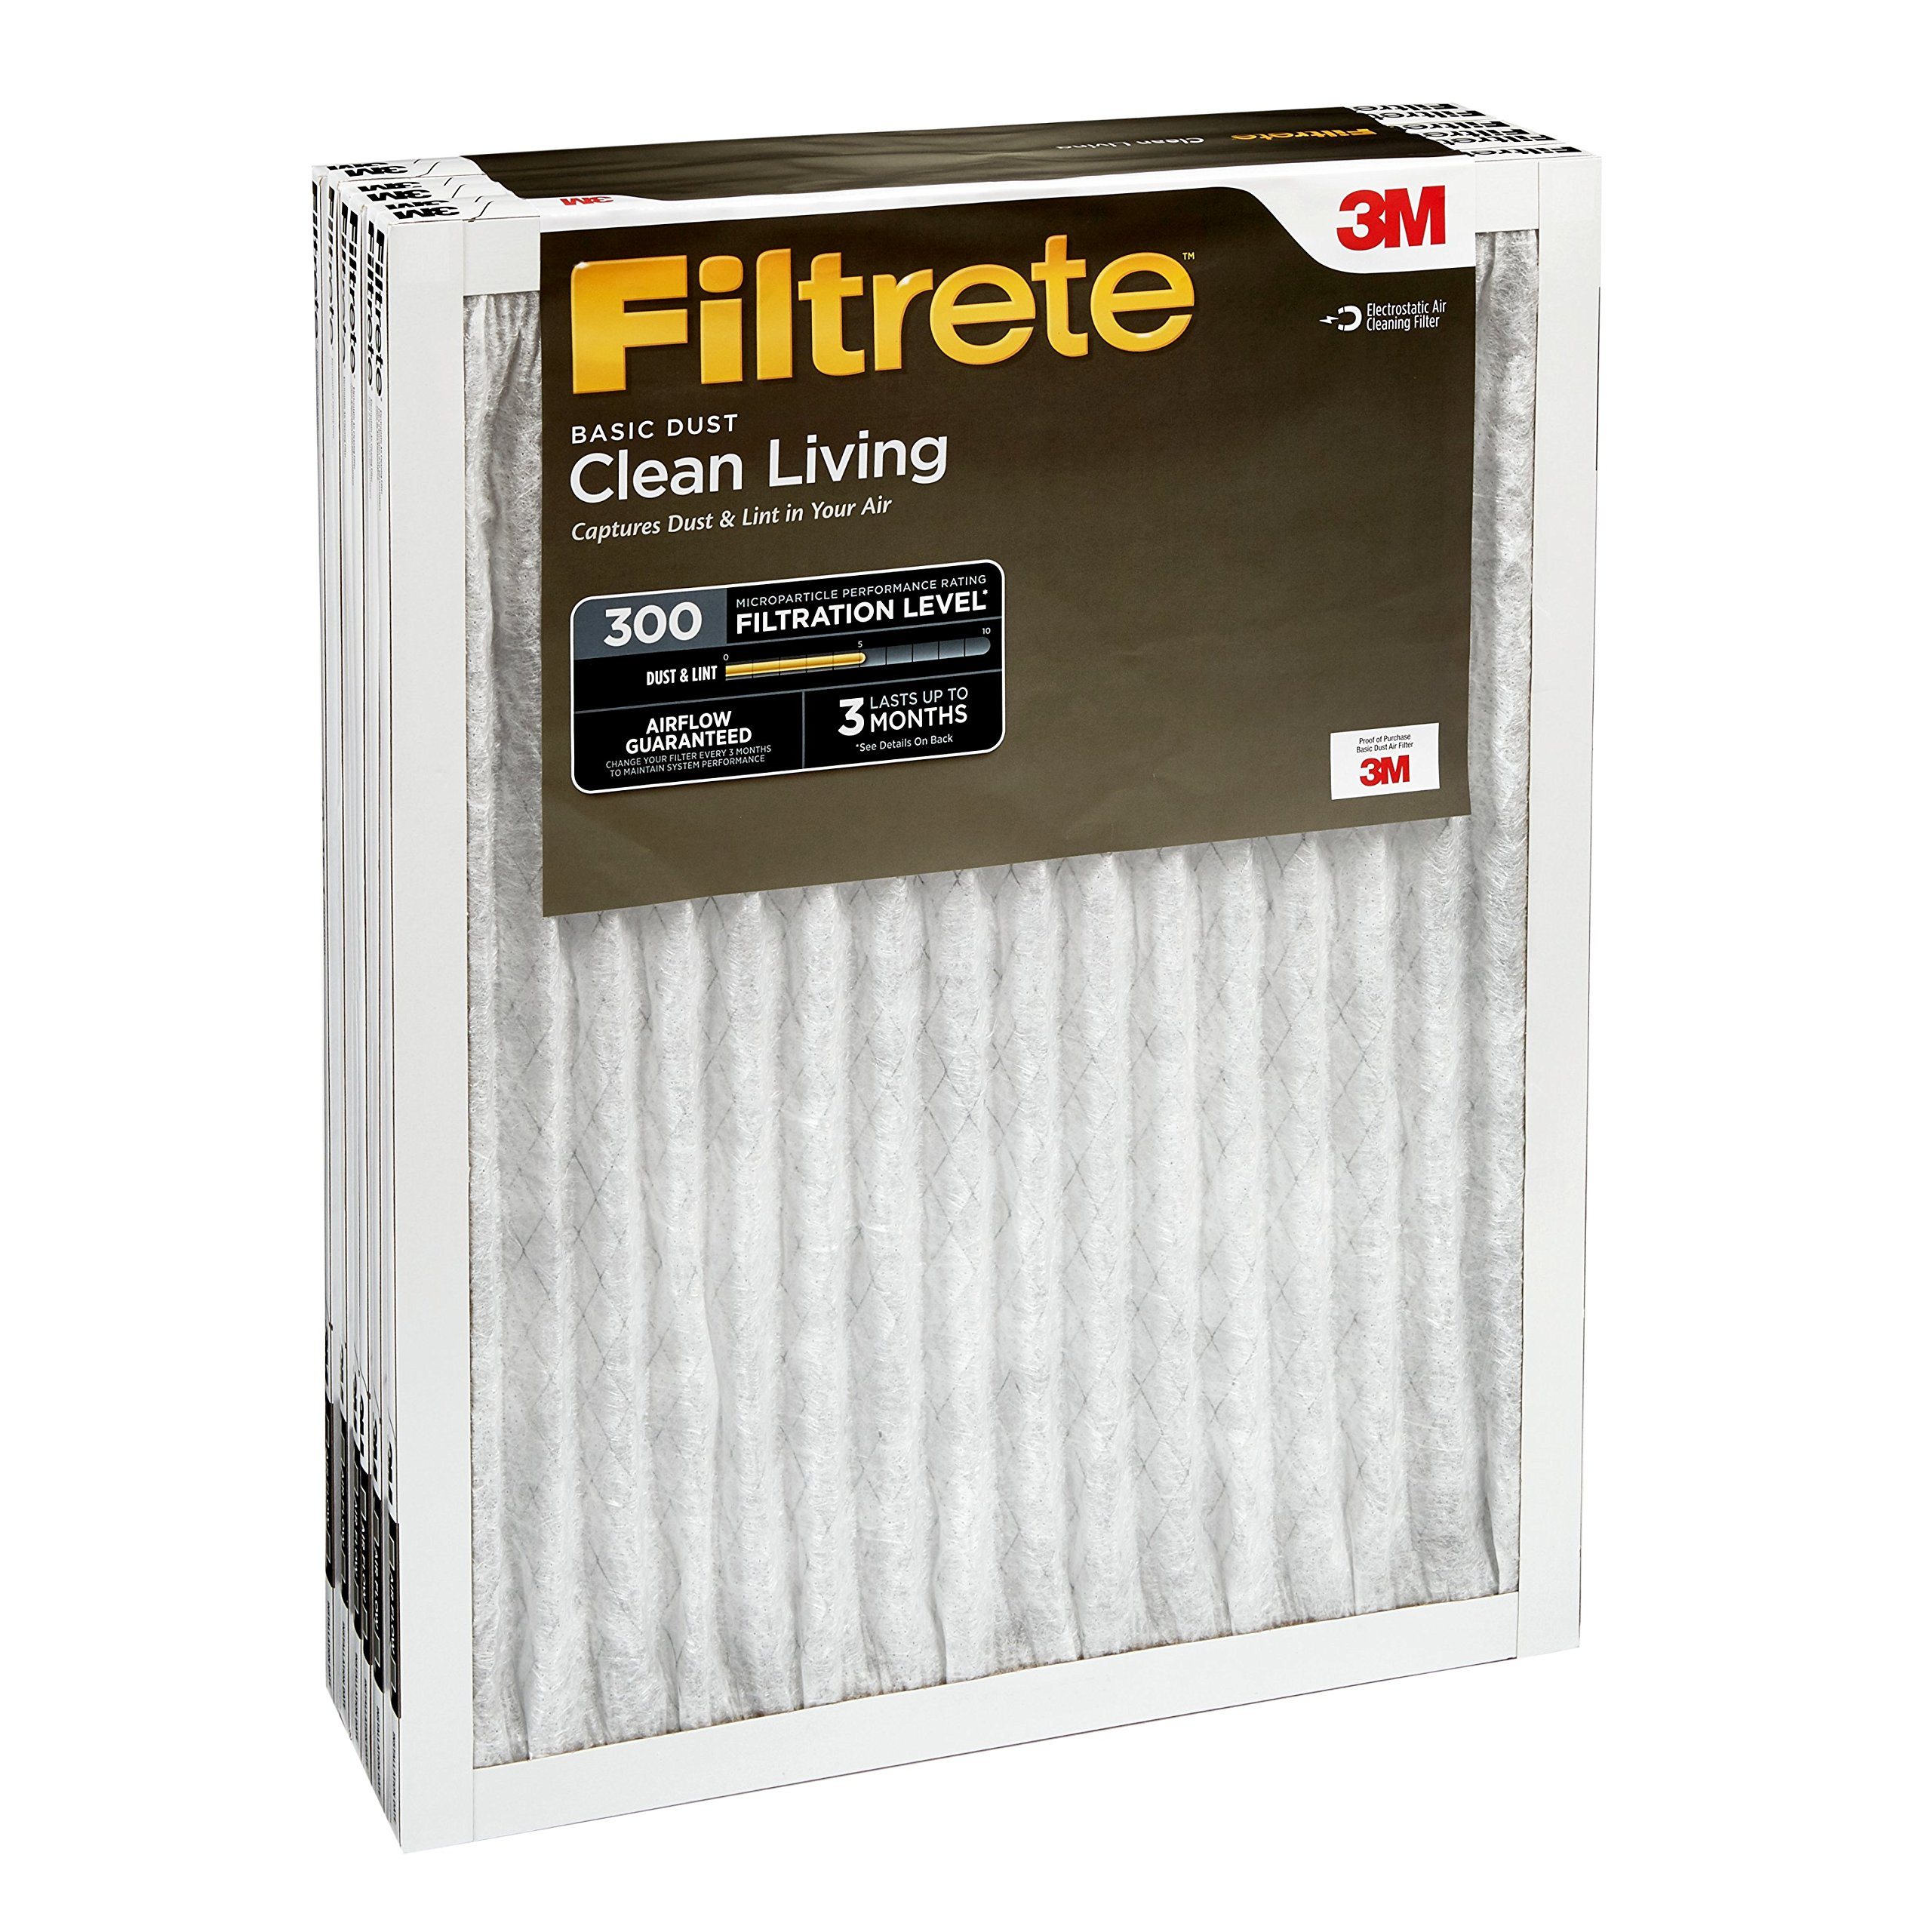 Filtrete 20x20x1, AC Furnace Air Filter, MPR 300, Clean Living Basic Dust, 6-Pack by Filtrete (Image #7)